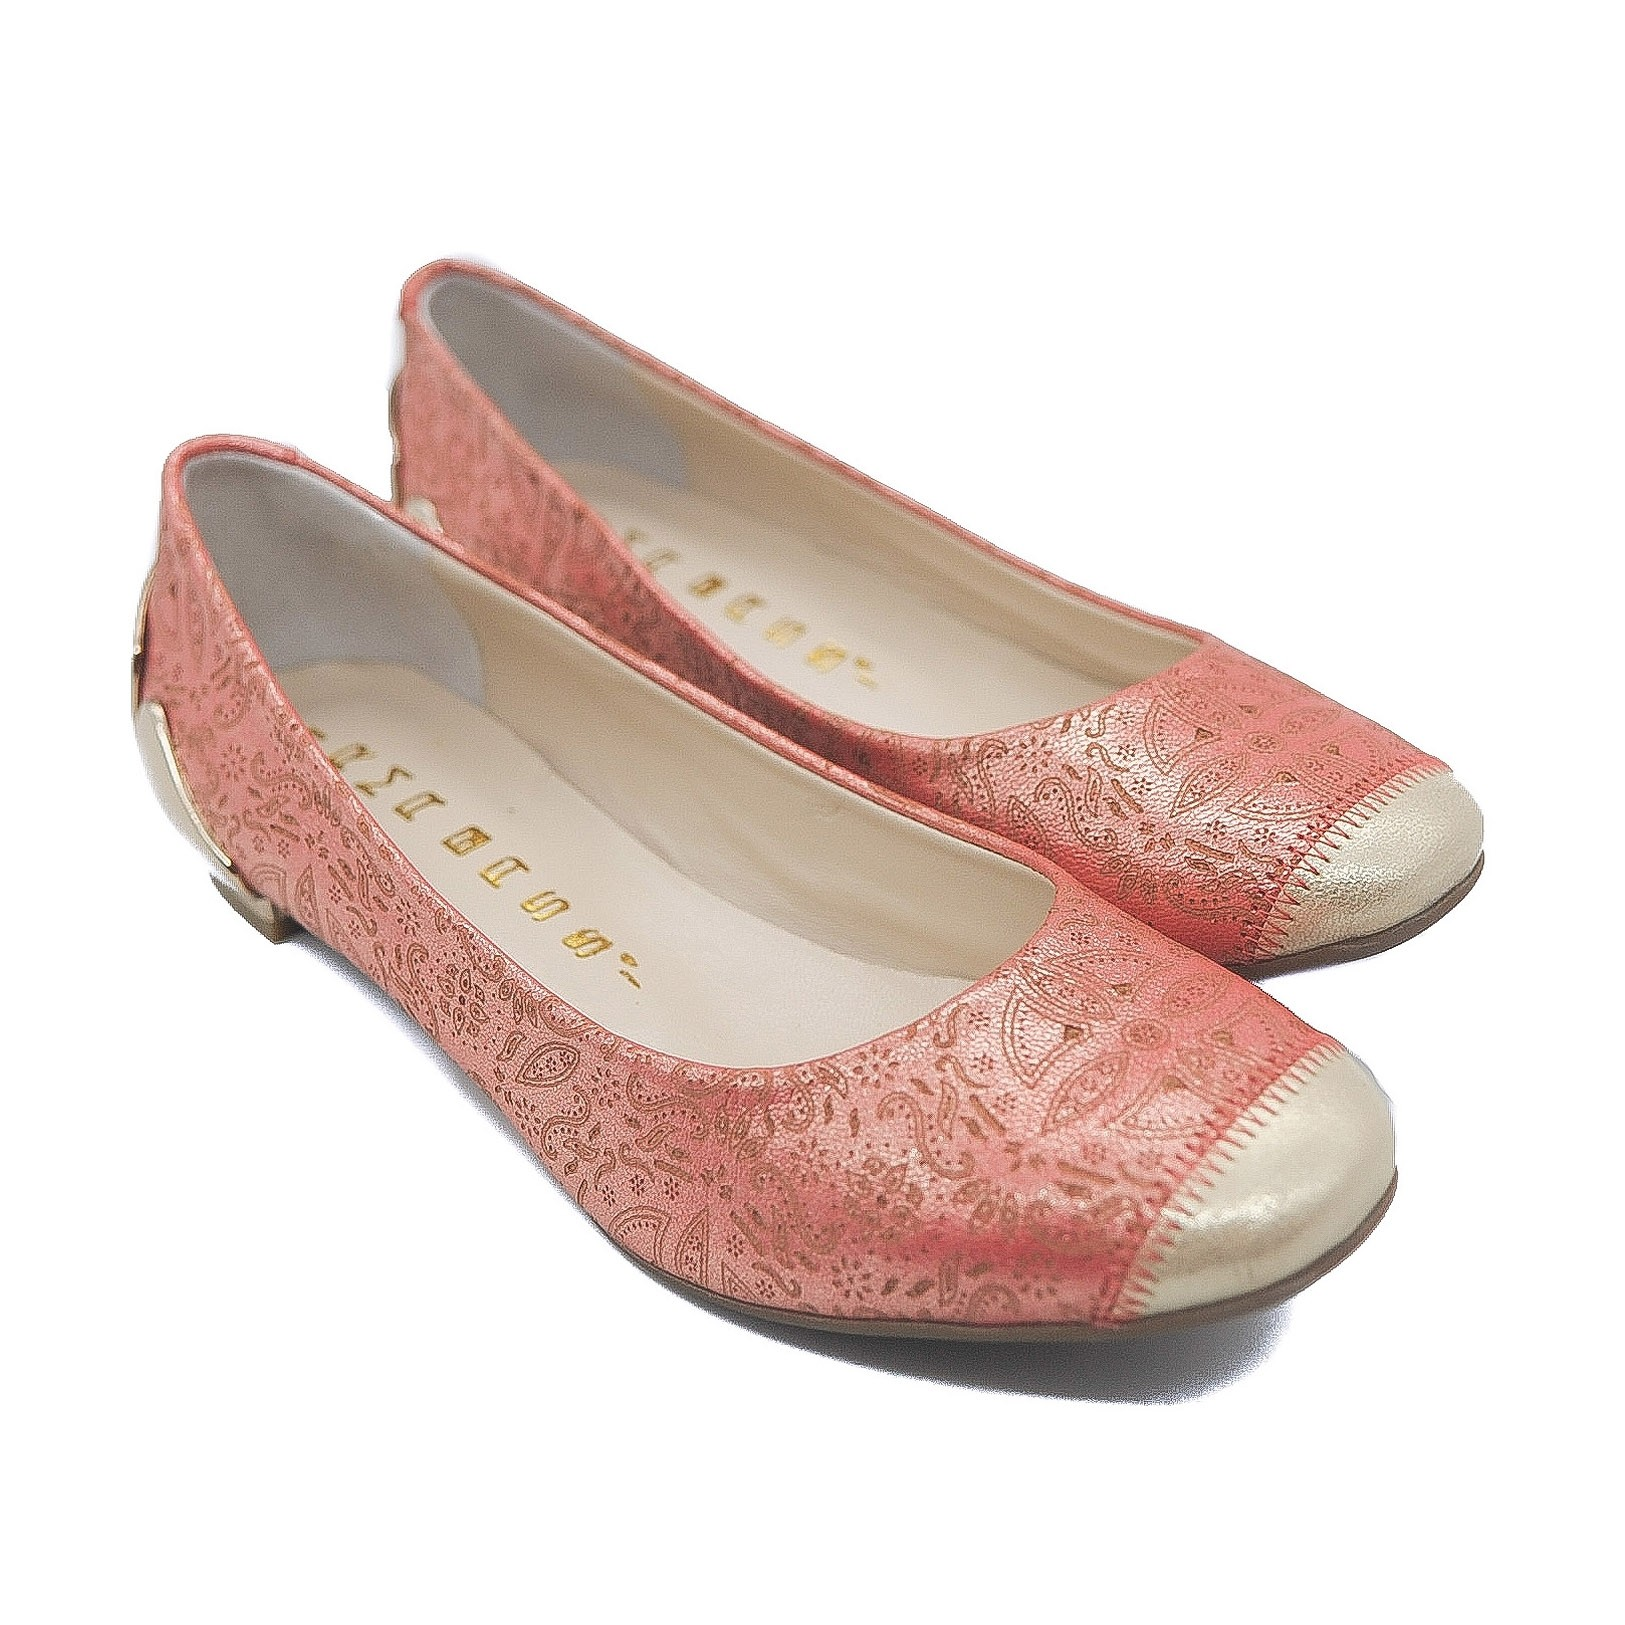 Goody2Shoes Orange Flat Ballet Pumps with Gold Metal Heel and Pinprick Pattern